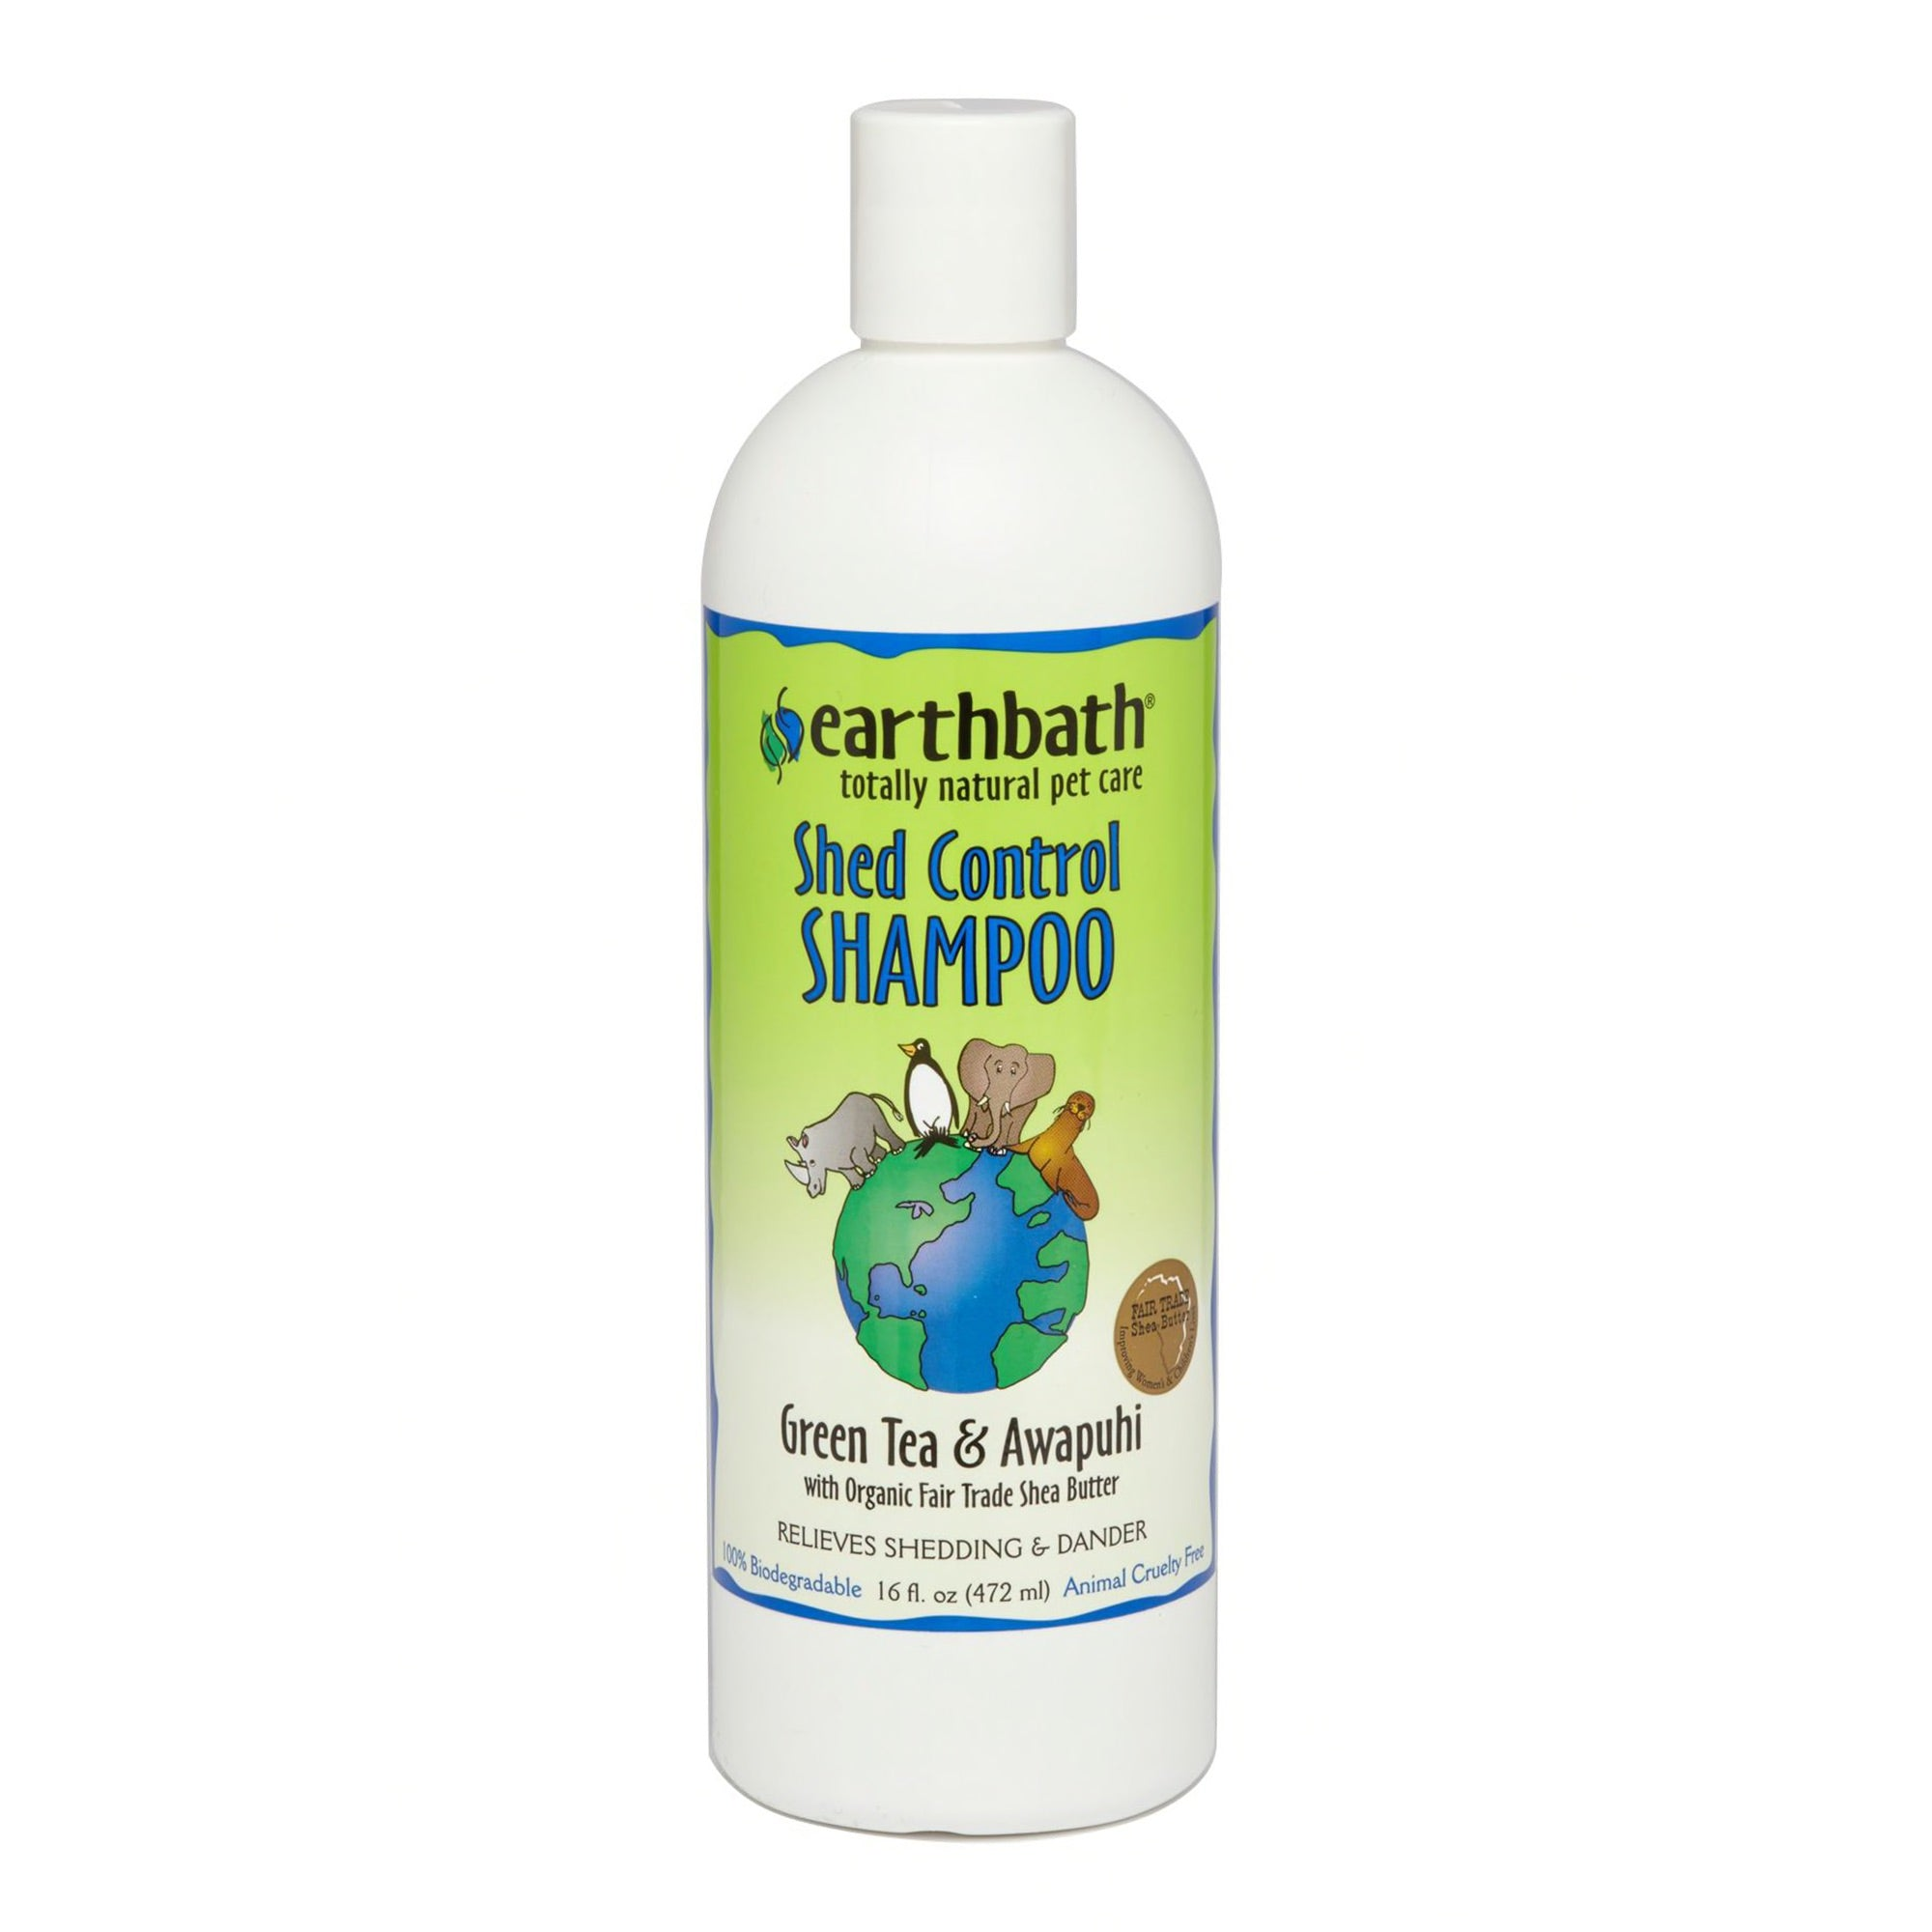 Earthbath - Shed Control Shampoo